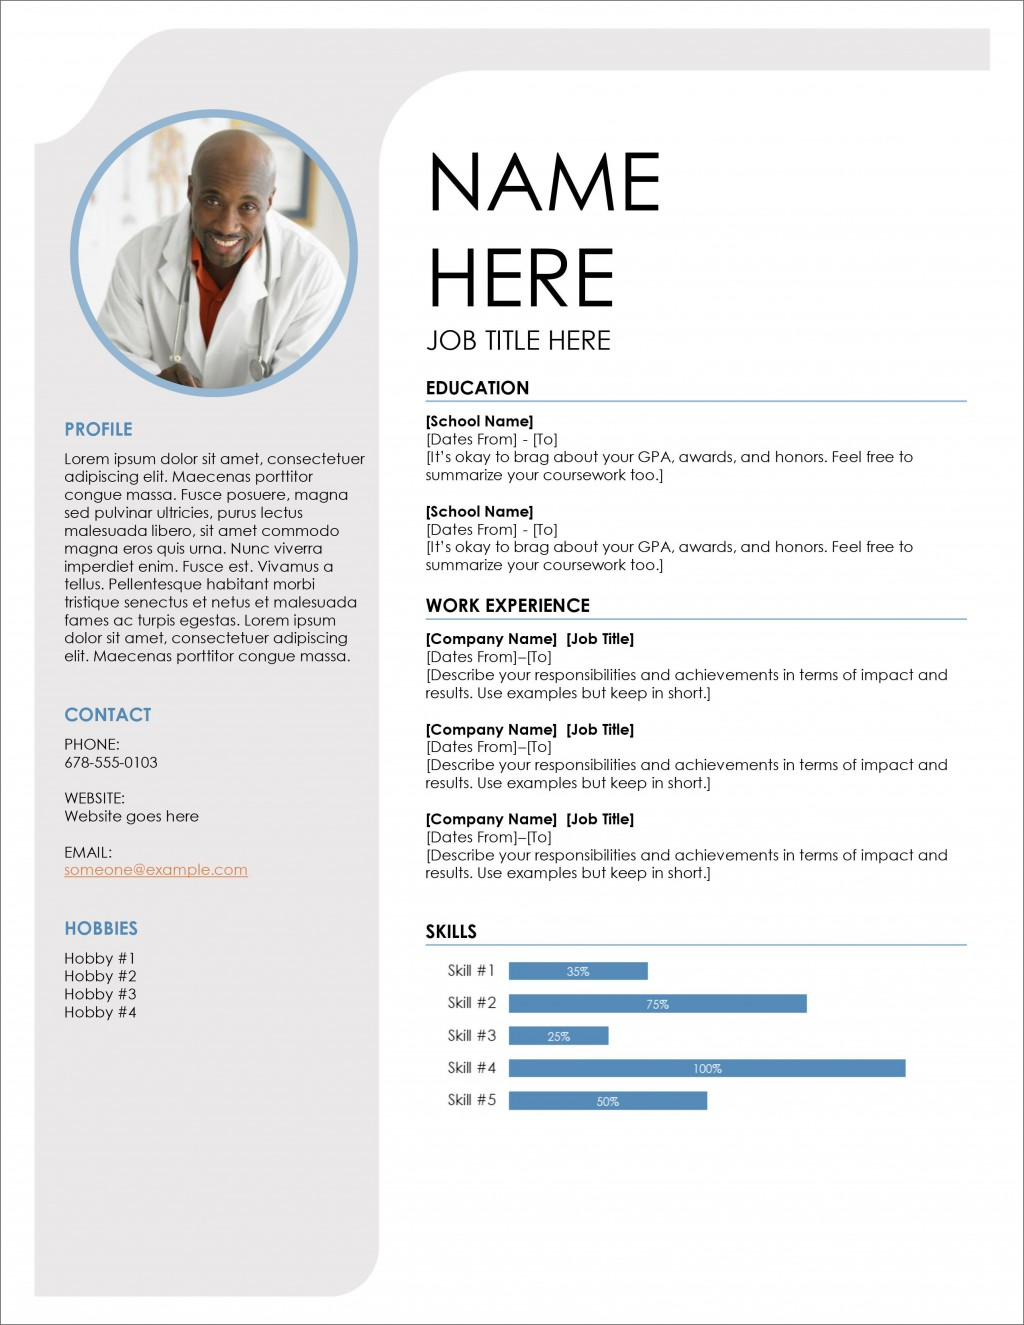 007 Phenomenal Resume Template Word Download Highest Clarity  For Fresher In Format Free 2020Large